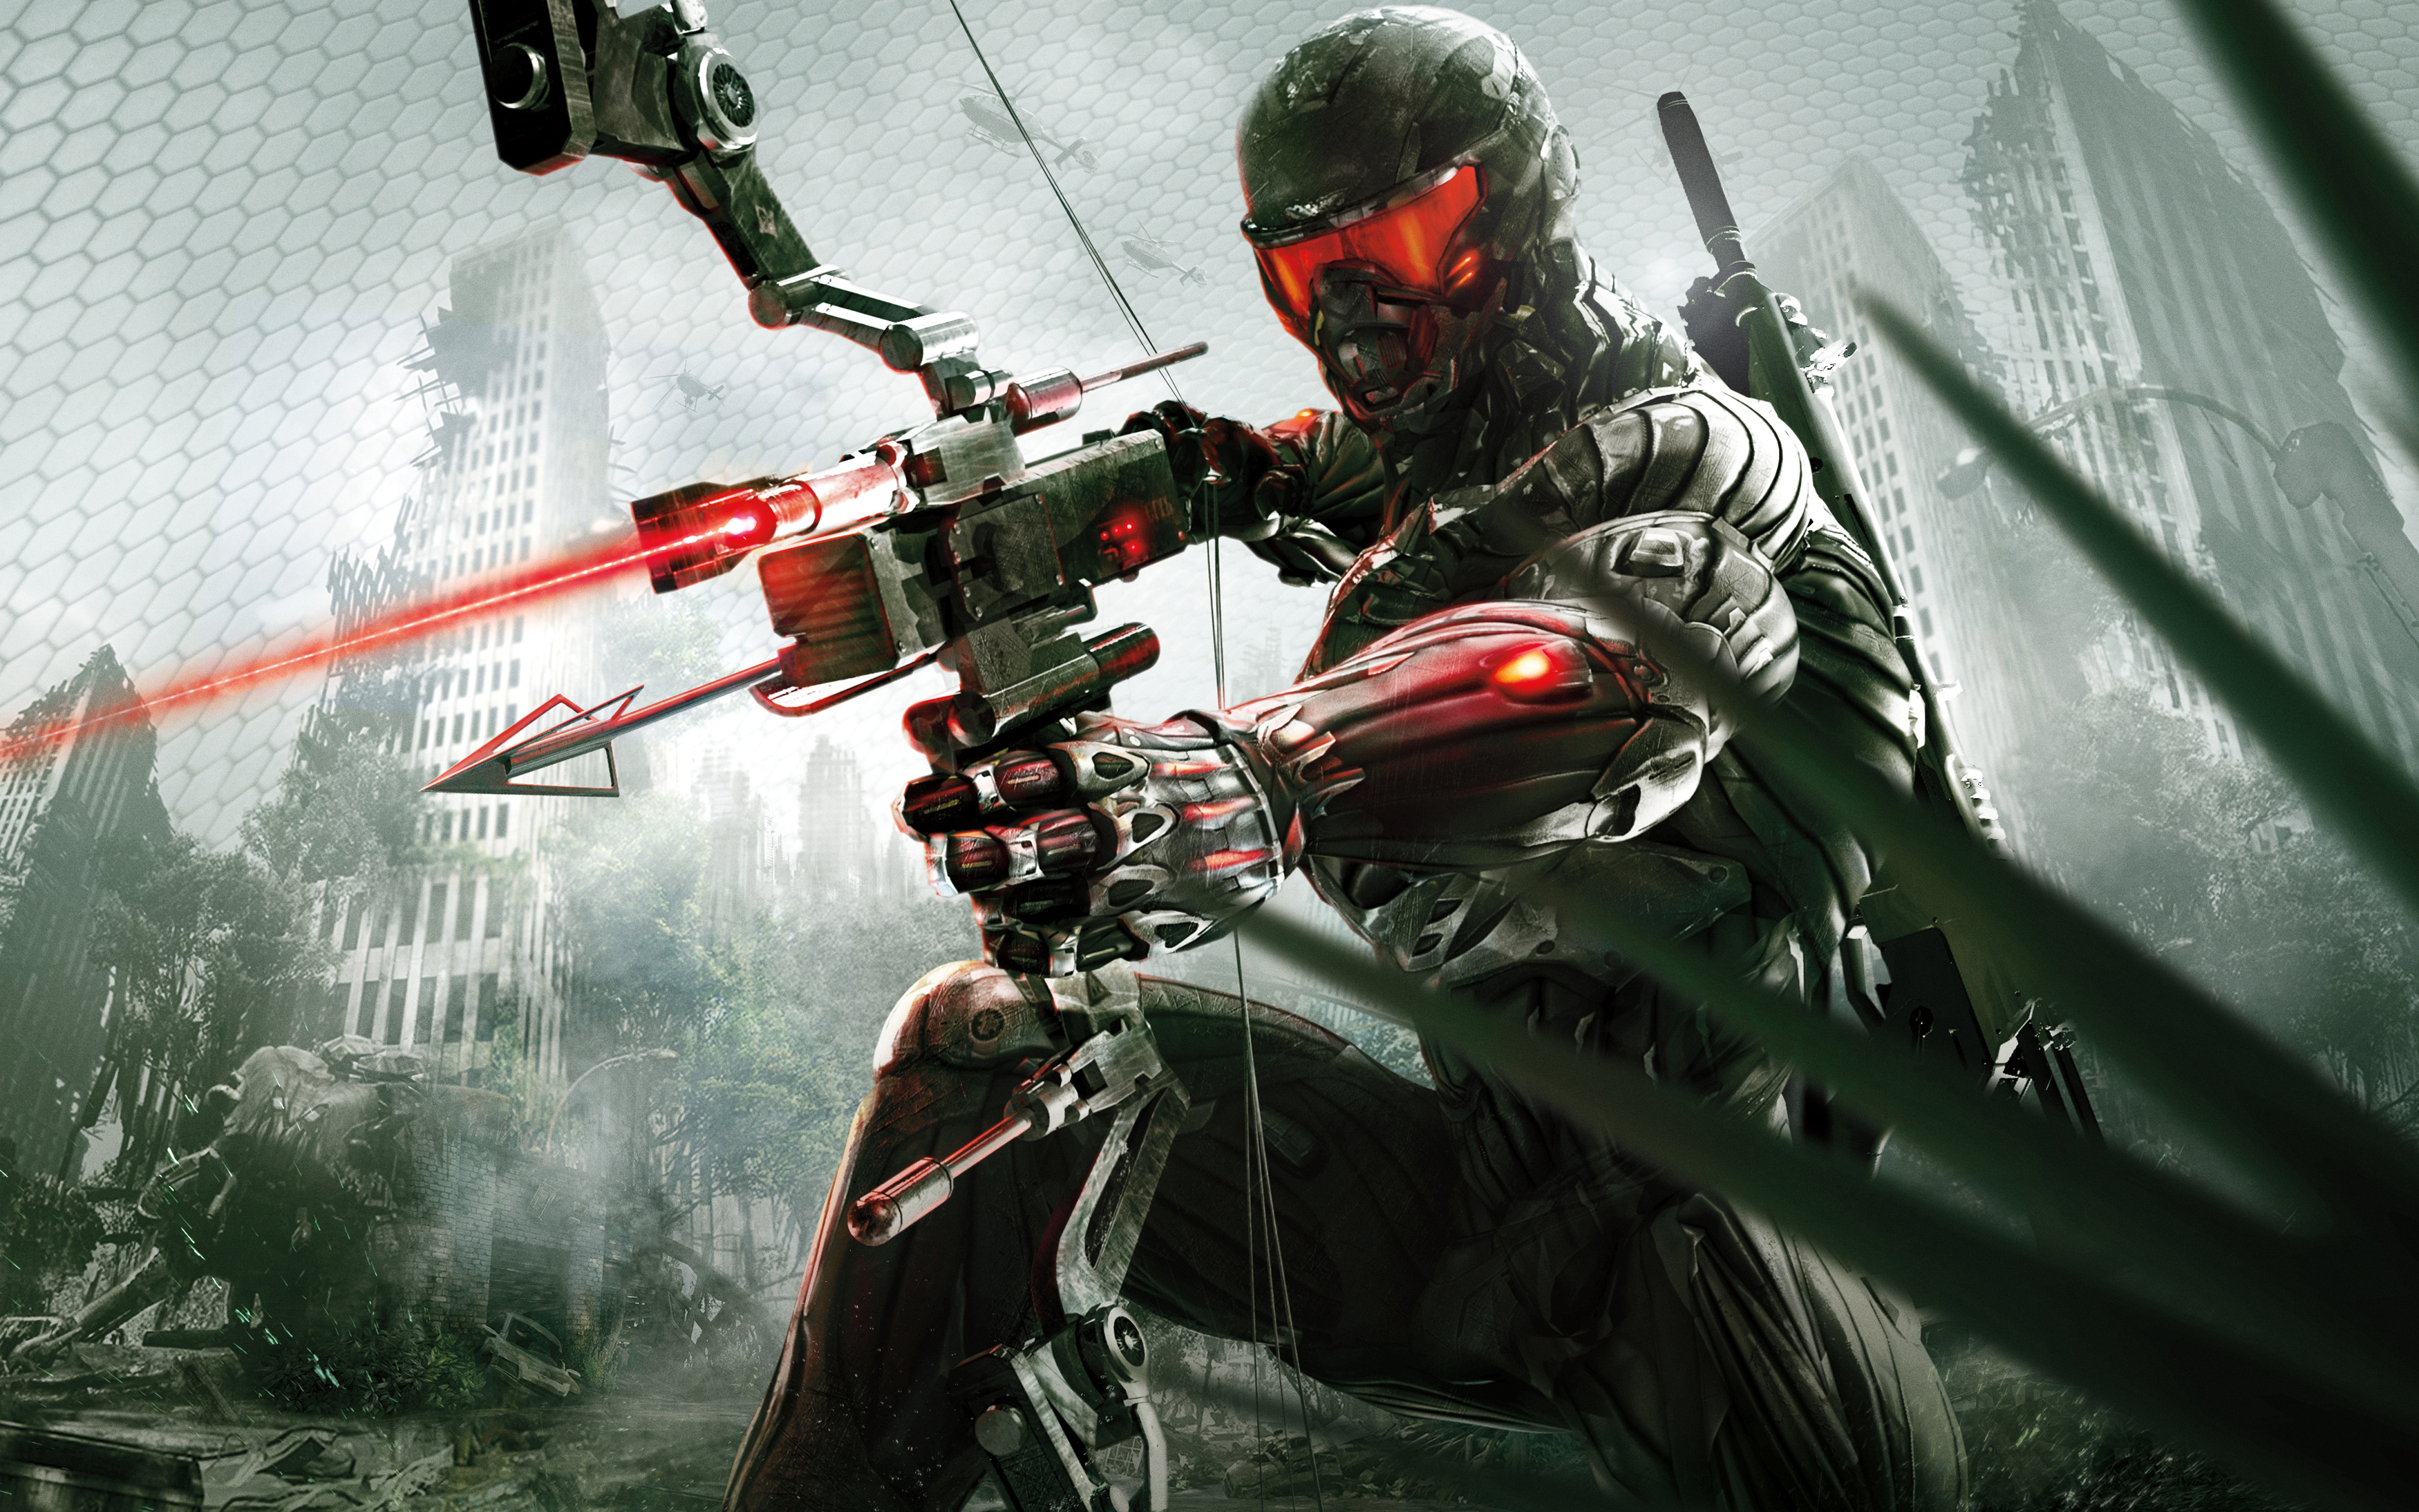 crysis 3 wallpaper A3